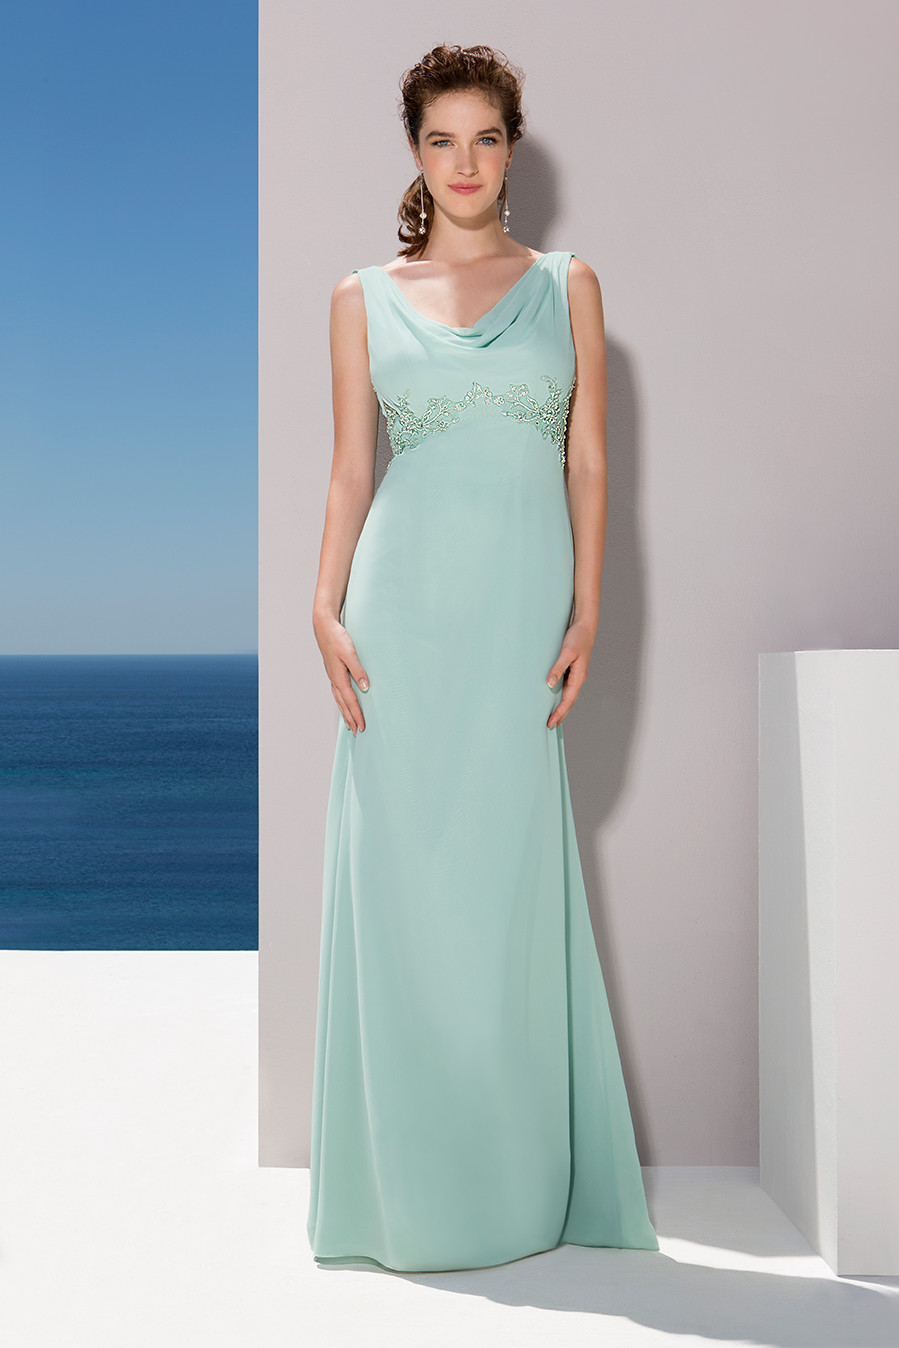 Colorful Mark Lesley Prom Dresses Ensign - All Wedding Dresses ...